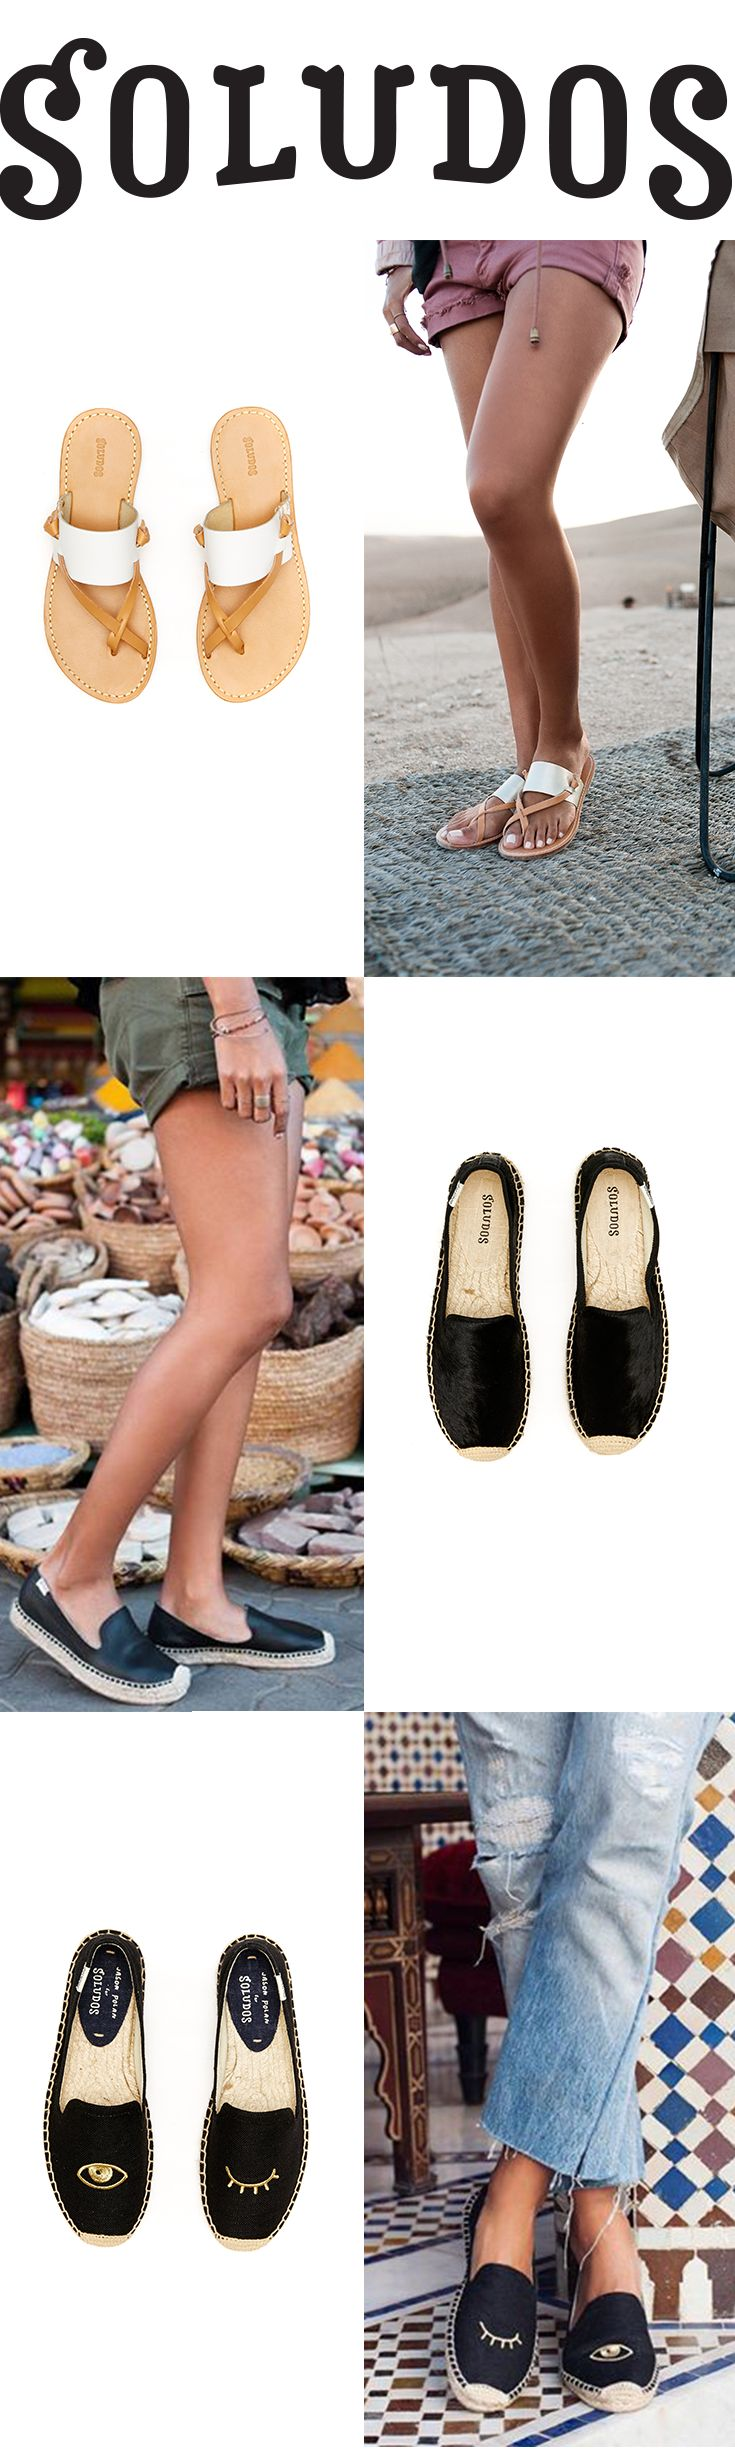 Sandals or Slip-ons? How do you Soludos?